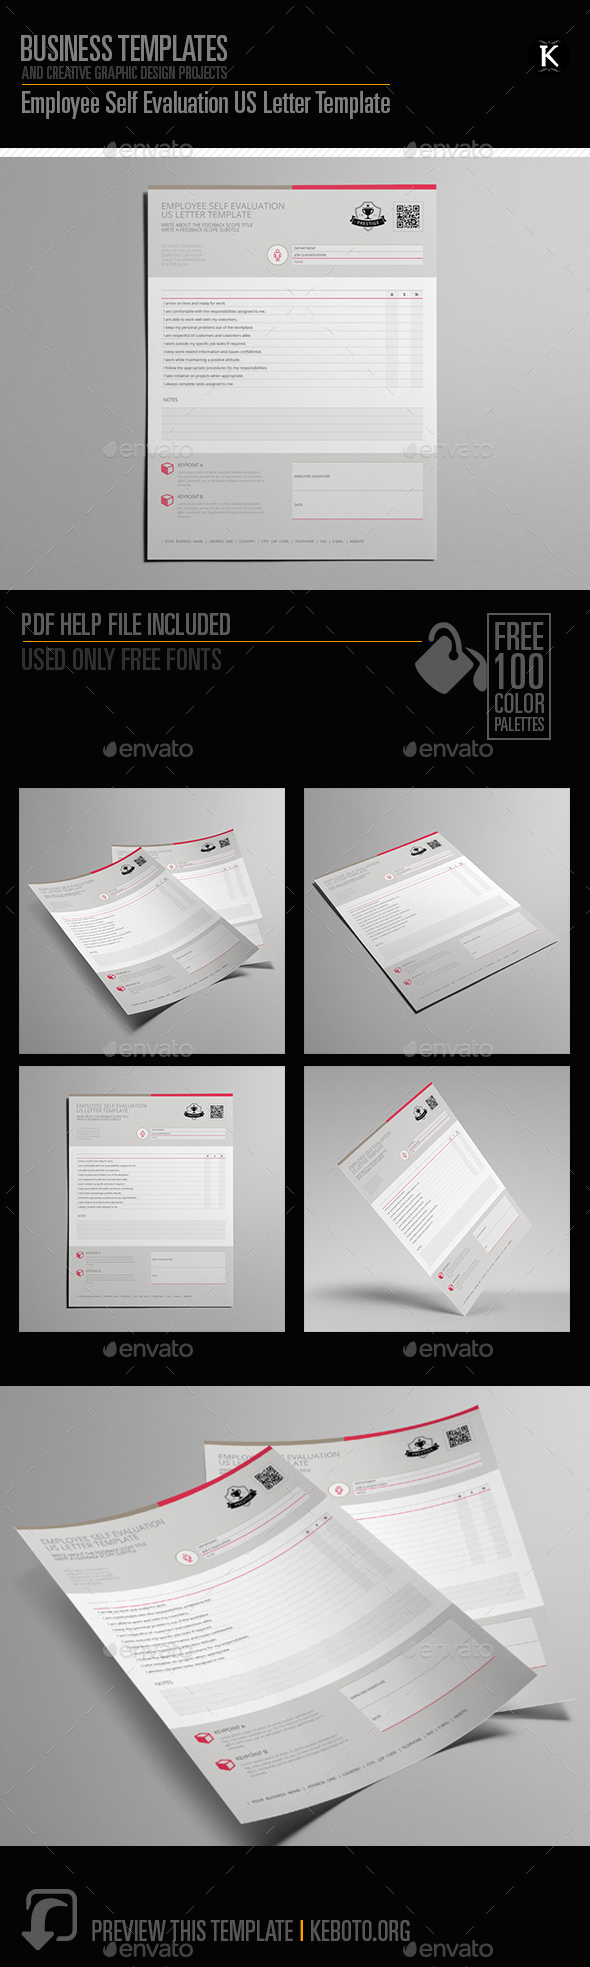 Employee Self Evaluation US Letter Template - Miscellaneous Print Templates